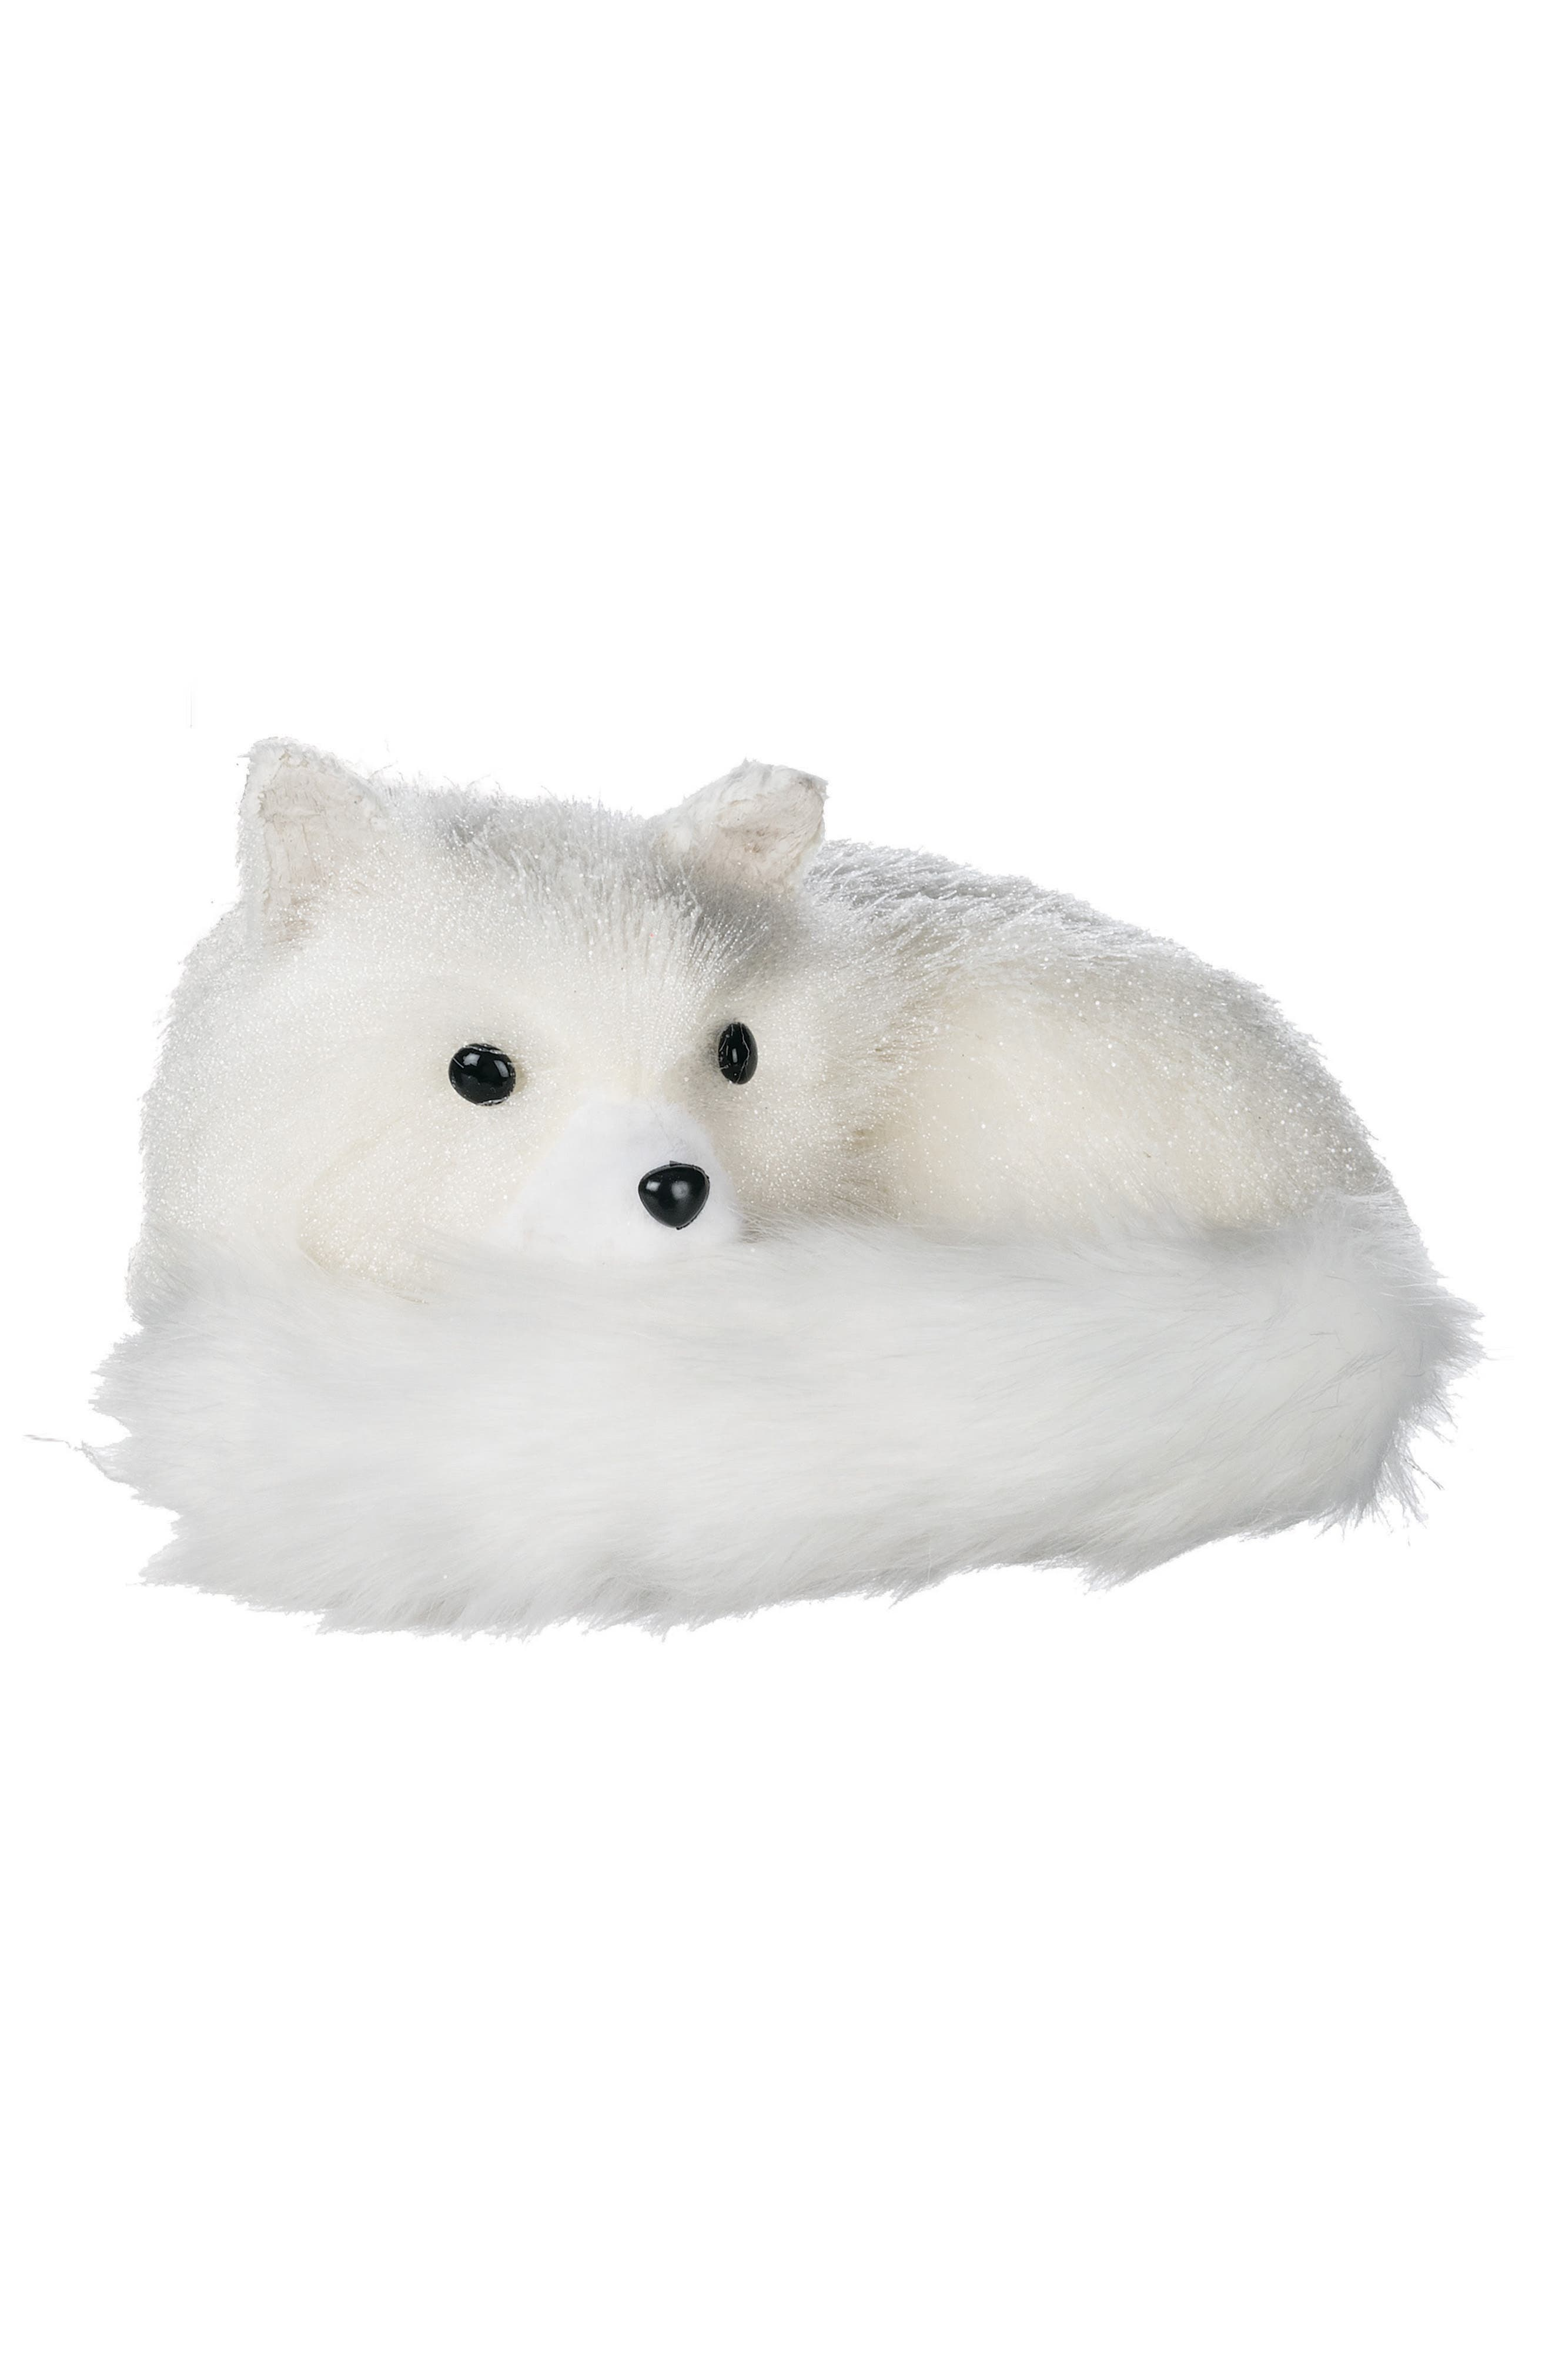 Sullivans Sleeping Fox Figurine